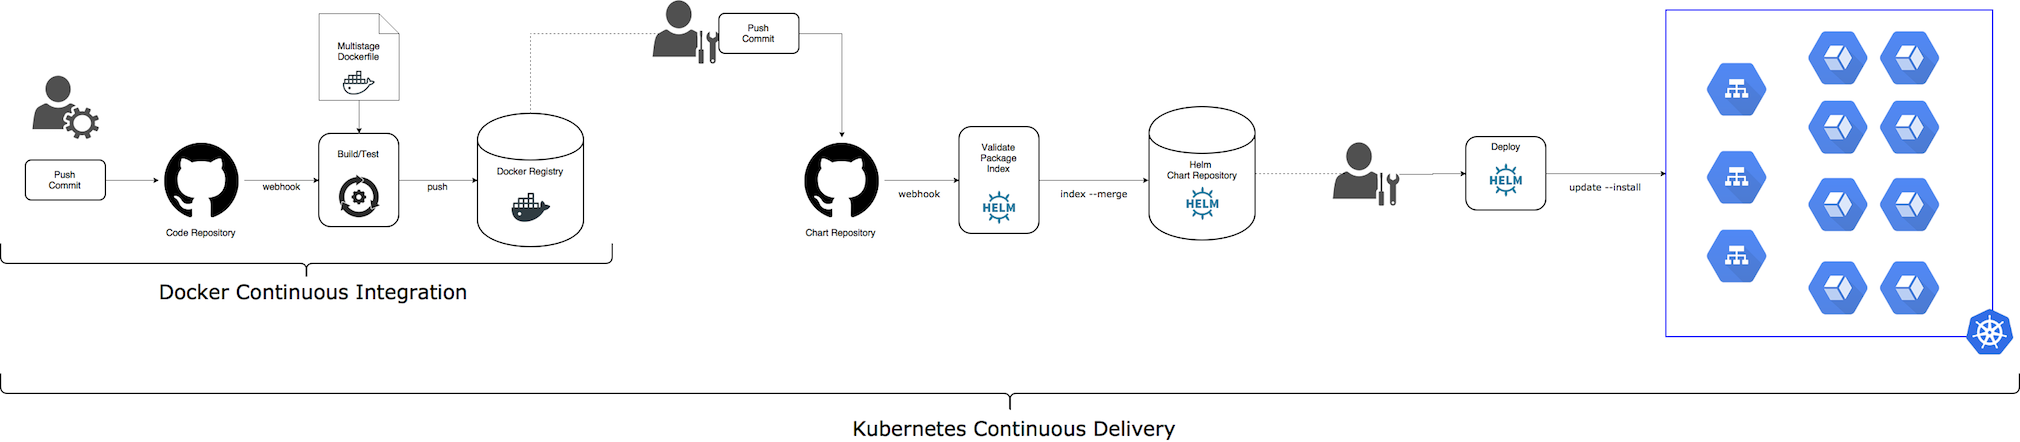 Kubernetes Continuous Delivery